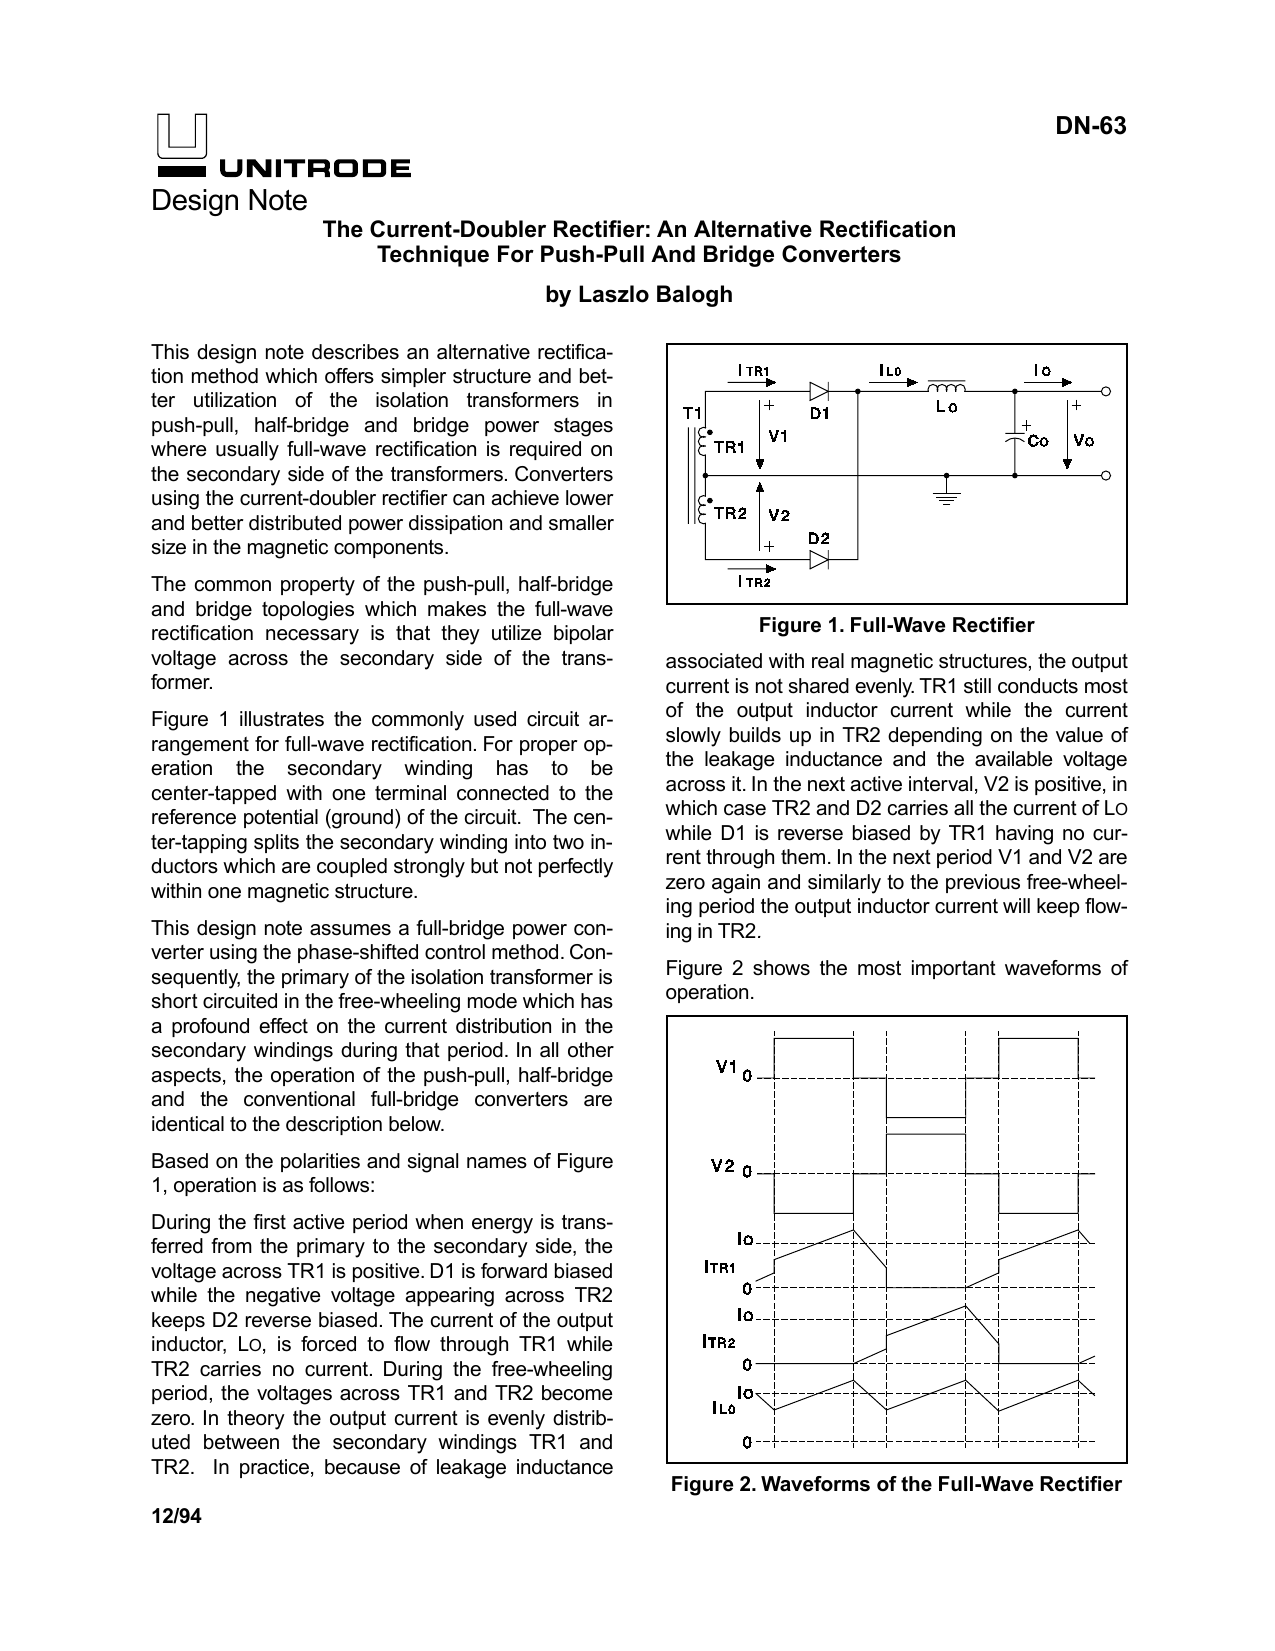 Dn 63 The Current Doubler Rectifier An Alternative Rectification Comparison Between Half Wave And Full Voltage Doublers